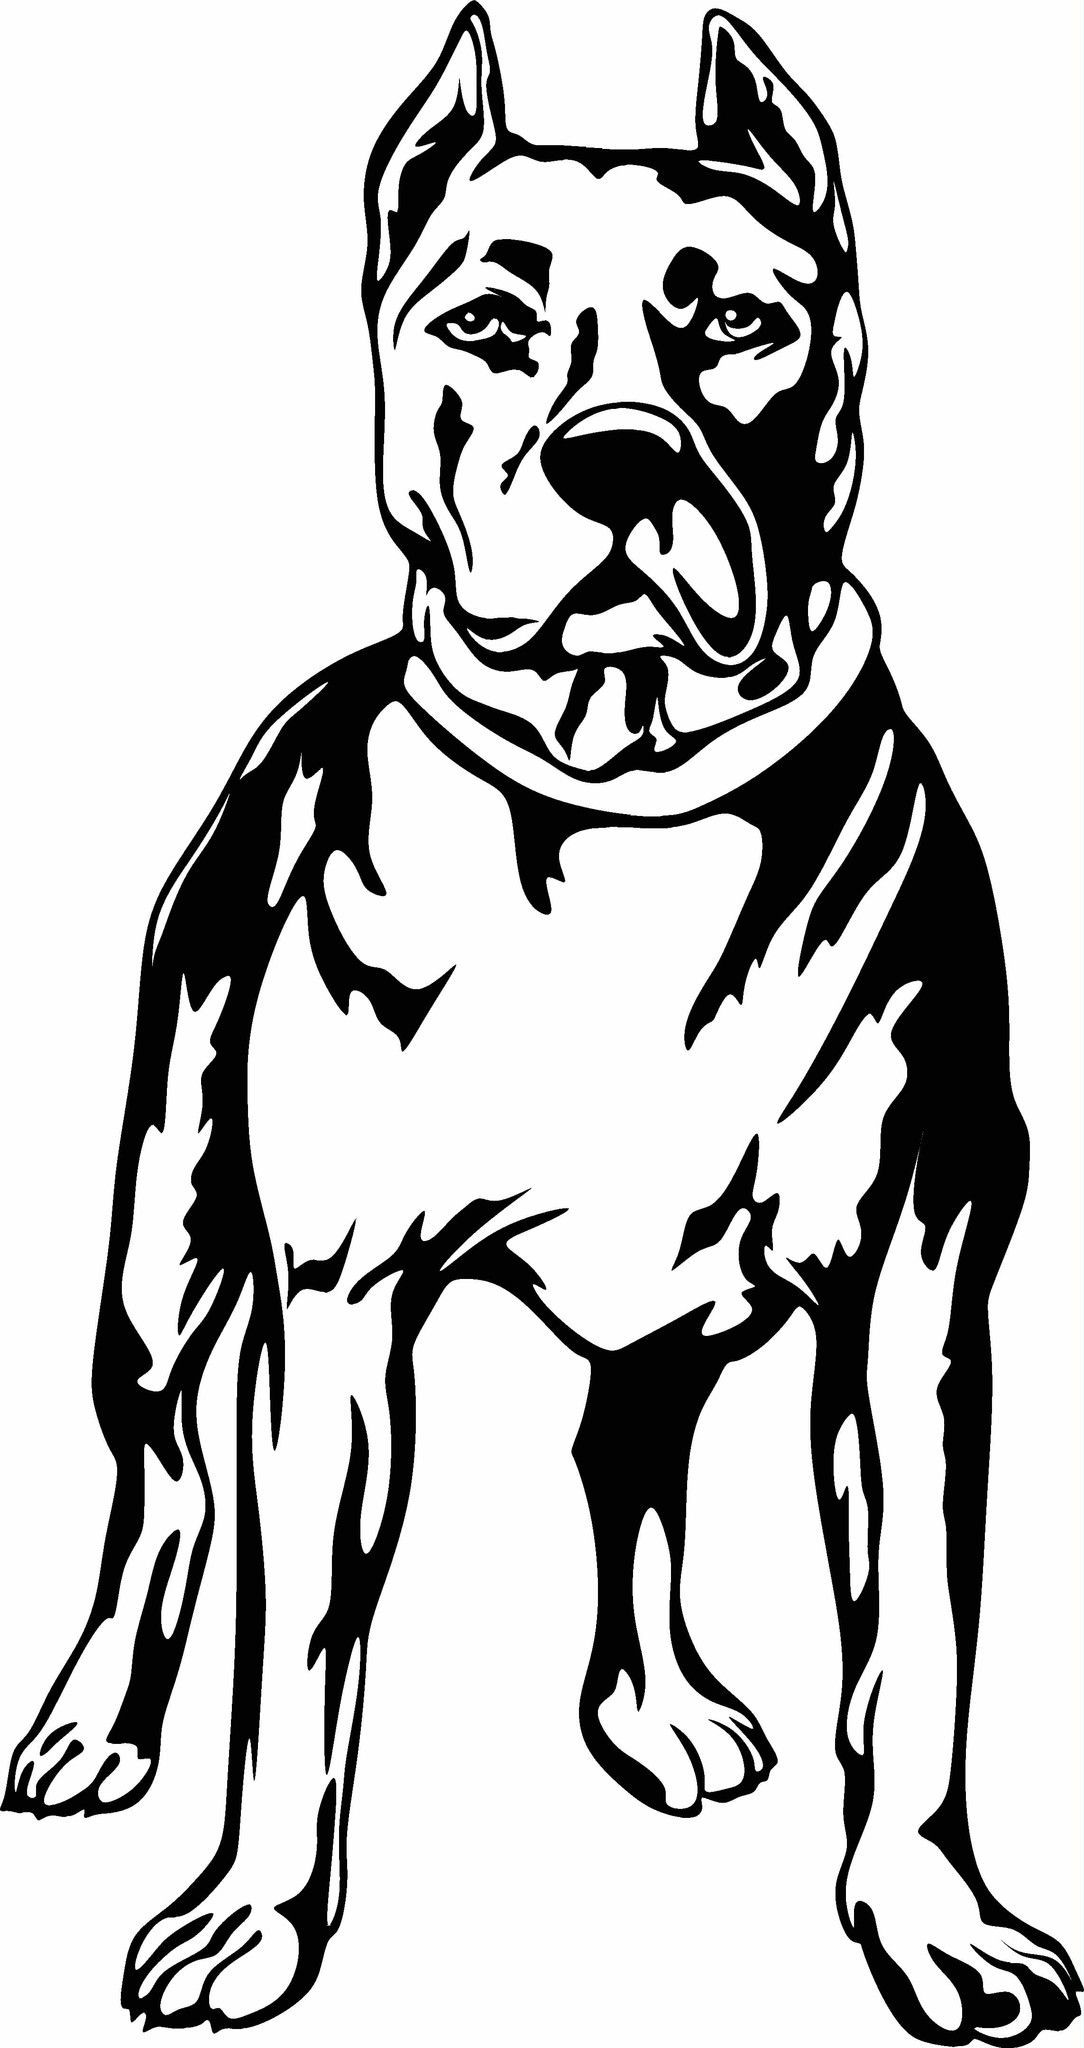 pitbull outline pictures outline of a pitbull free transparent clipart clipartkey pitbull pictures outline